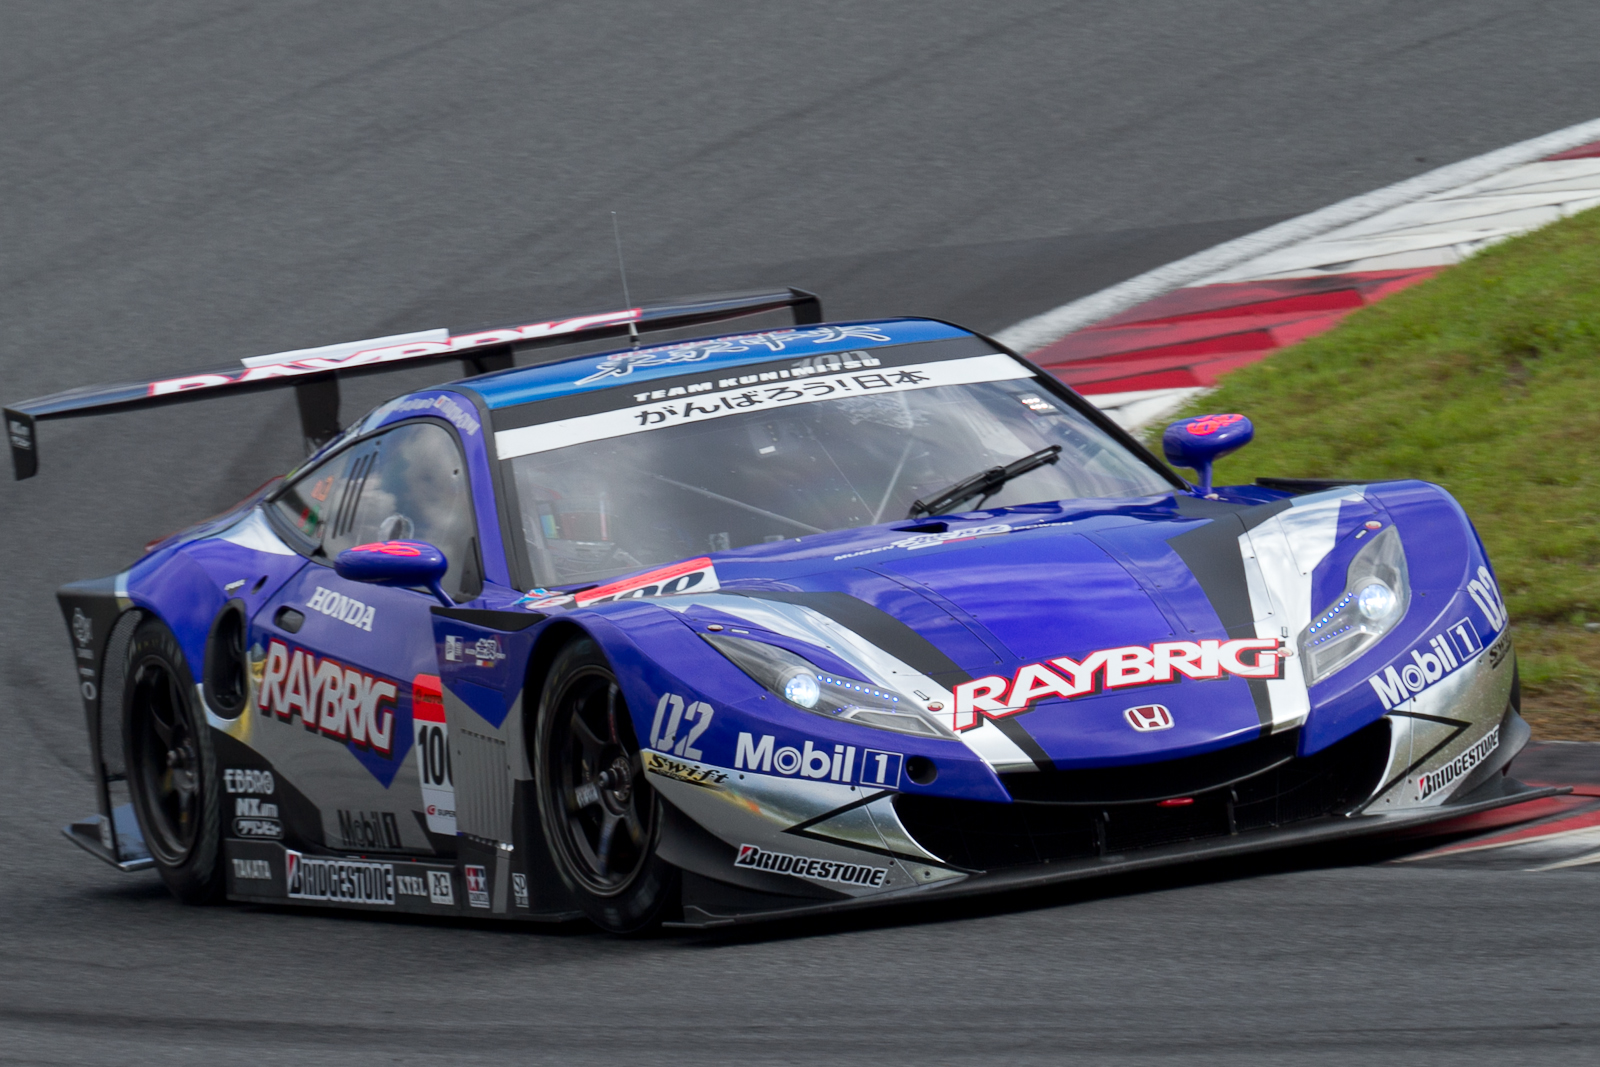 Charmant File:Raybrig HSV 010 2011 Super GT Fuji 250km